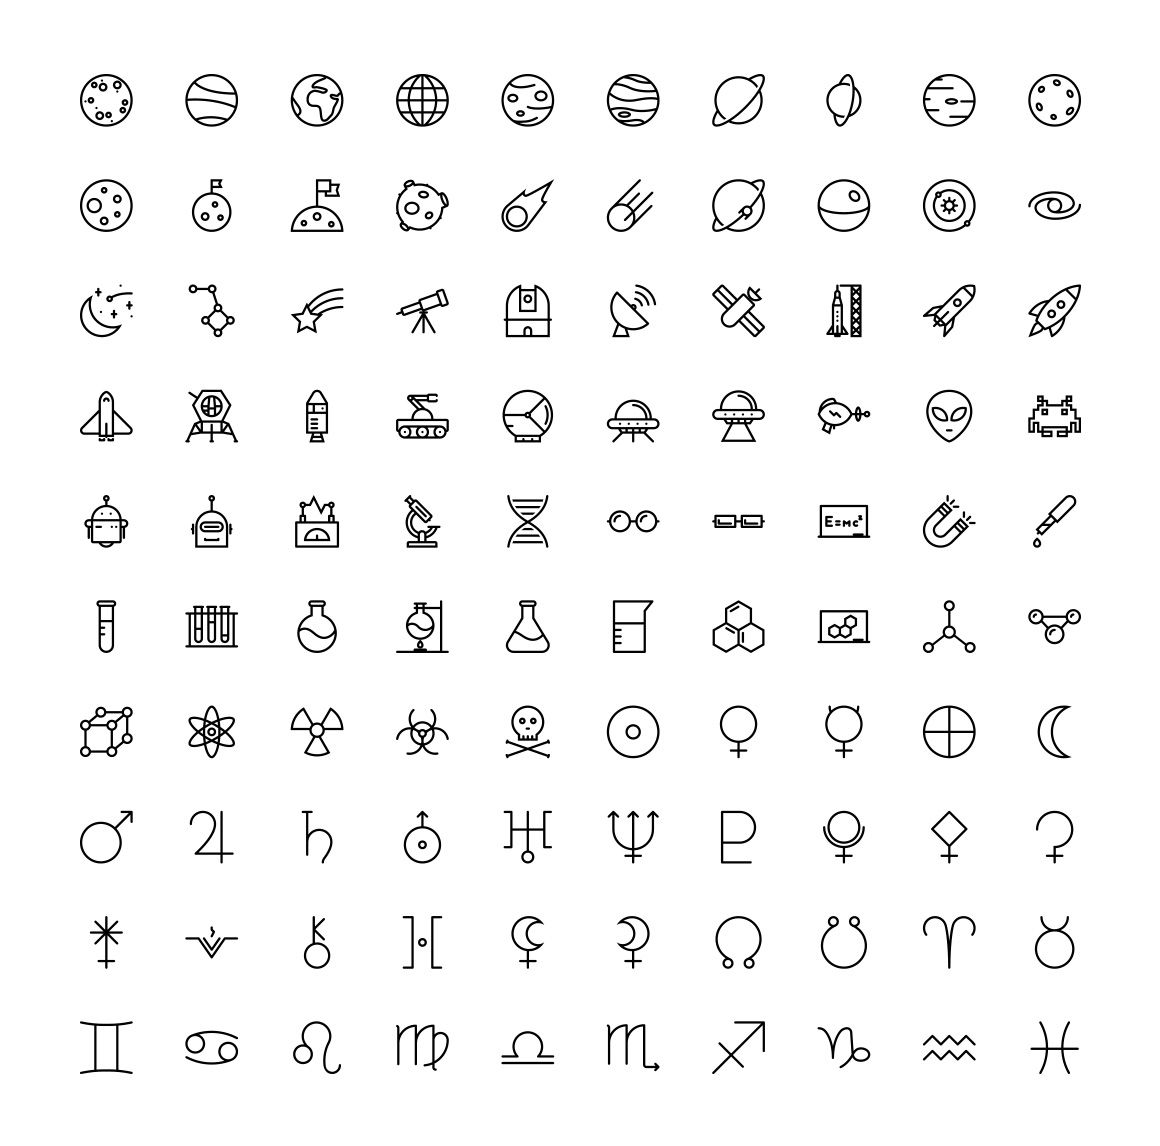 Tattoos for men download the space u science icons  by the store on creativemarket